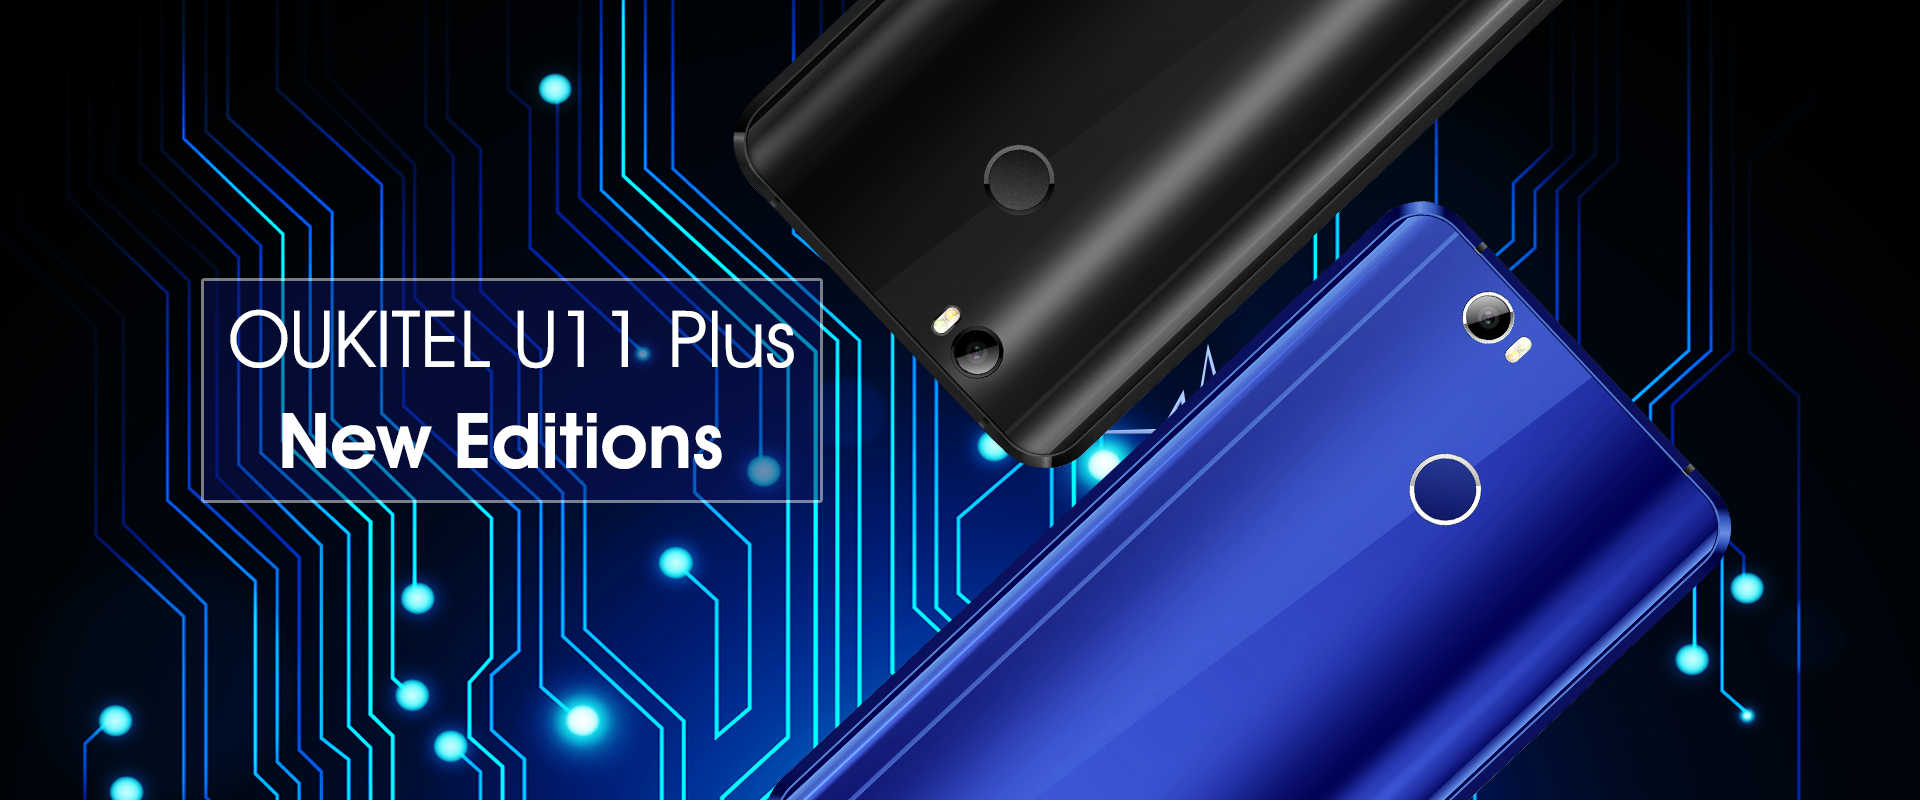 Smartphone OUKITEL U11 Plus got two new versions